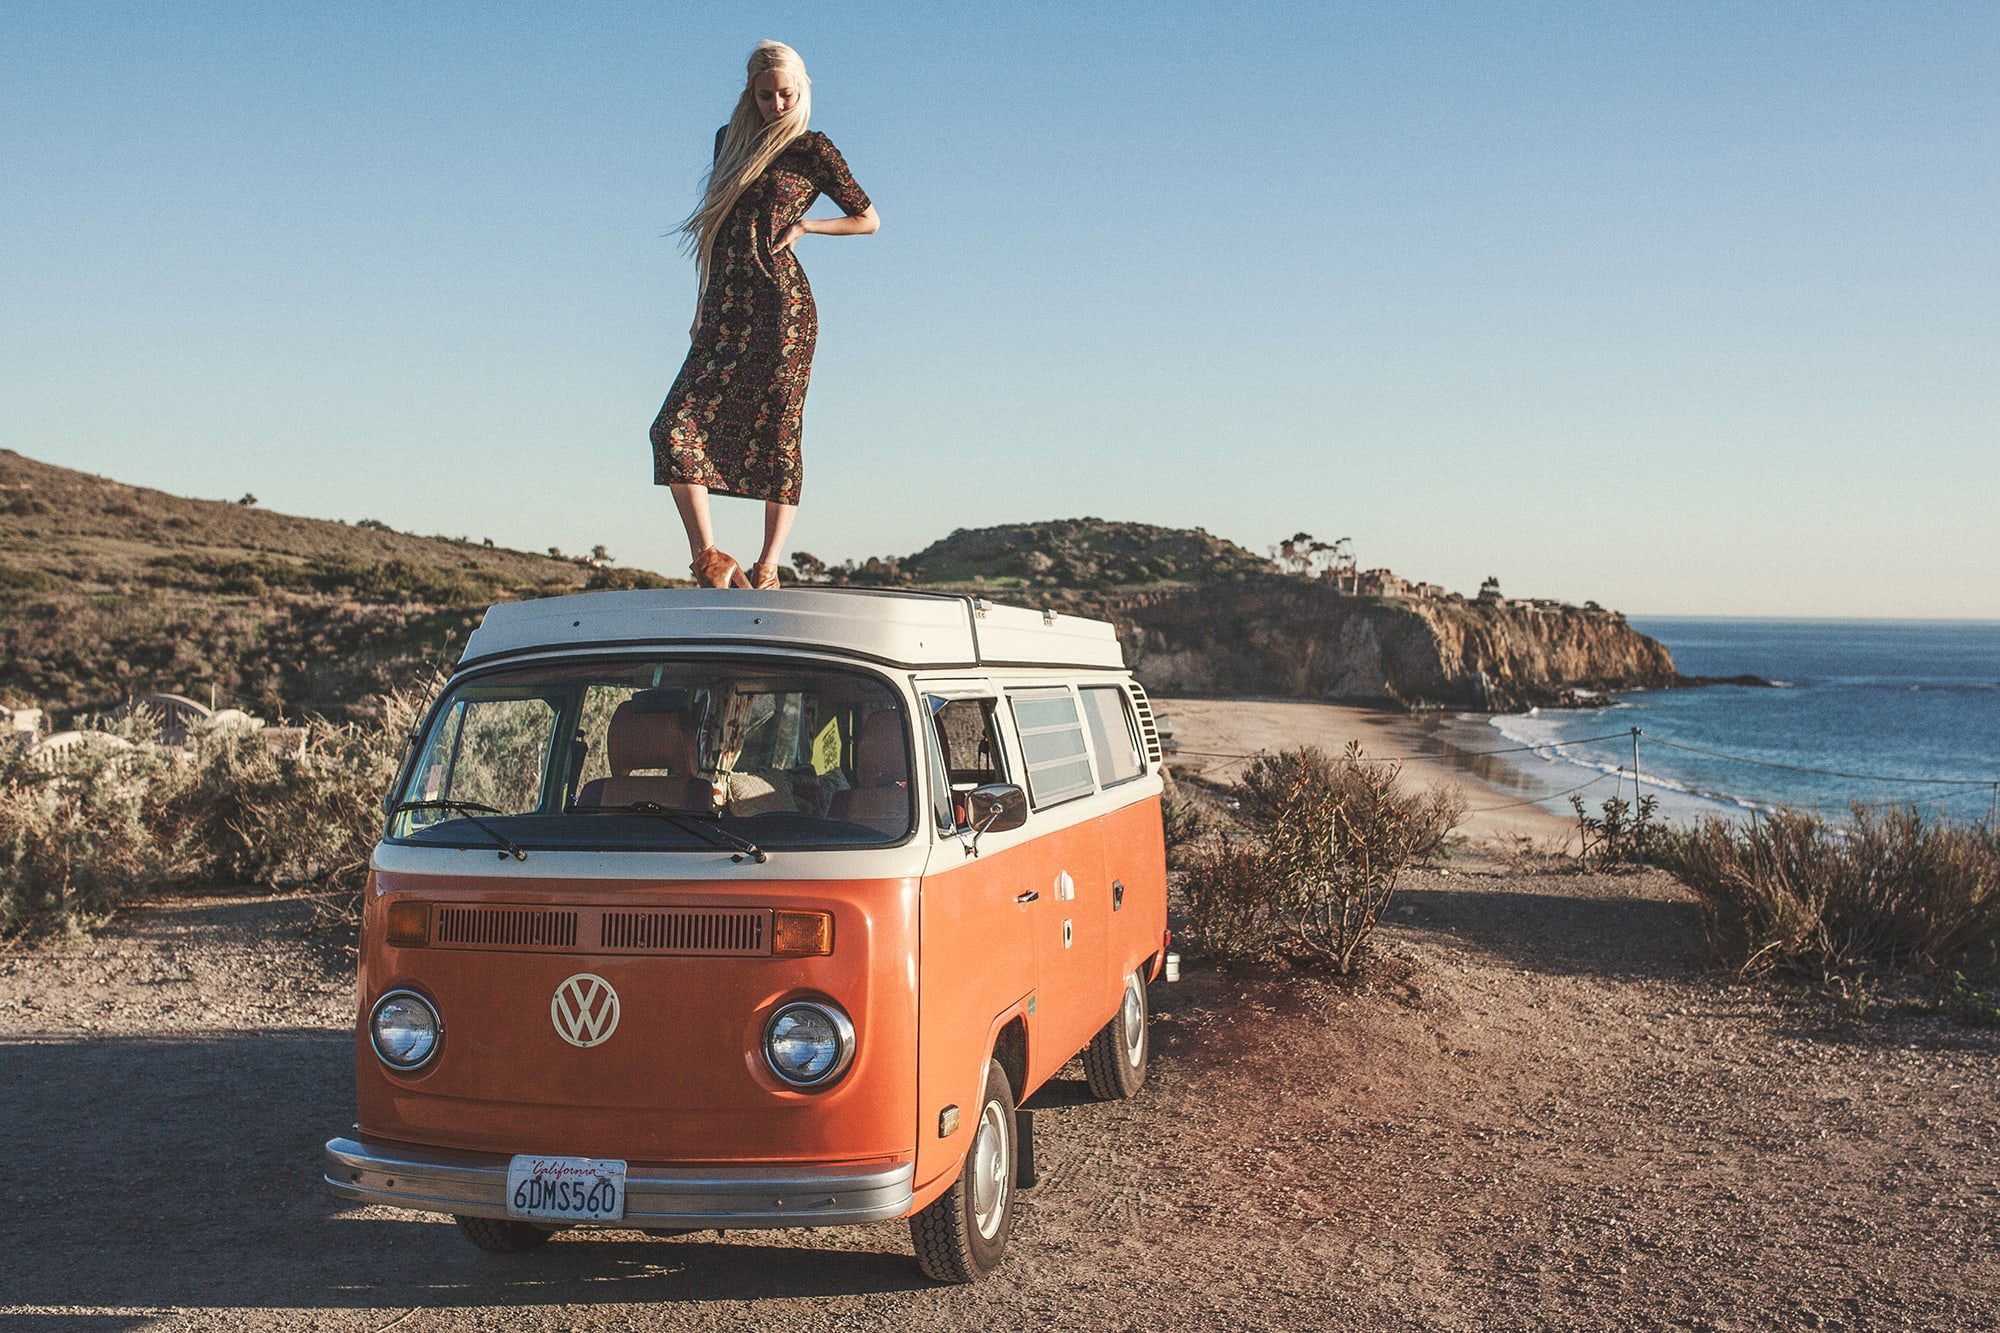 Sarah Loven for Sea Gypsies and VW Surfer Wagons